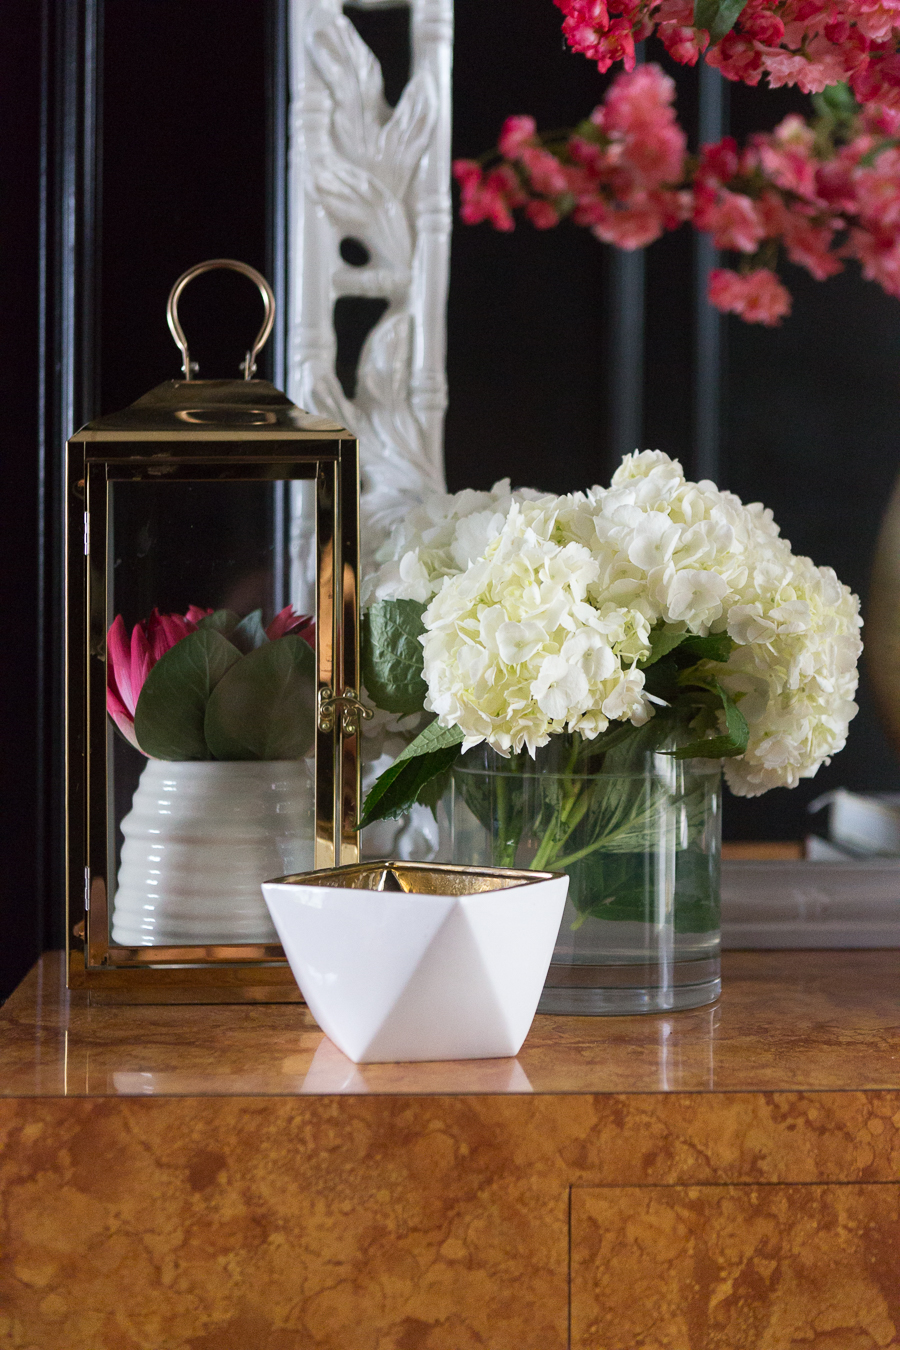 5 Tips to Decorate Your Home with Drew Barrymore Flower Home-5